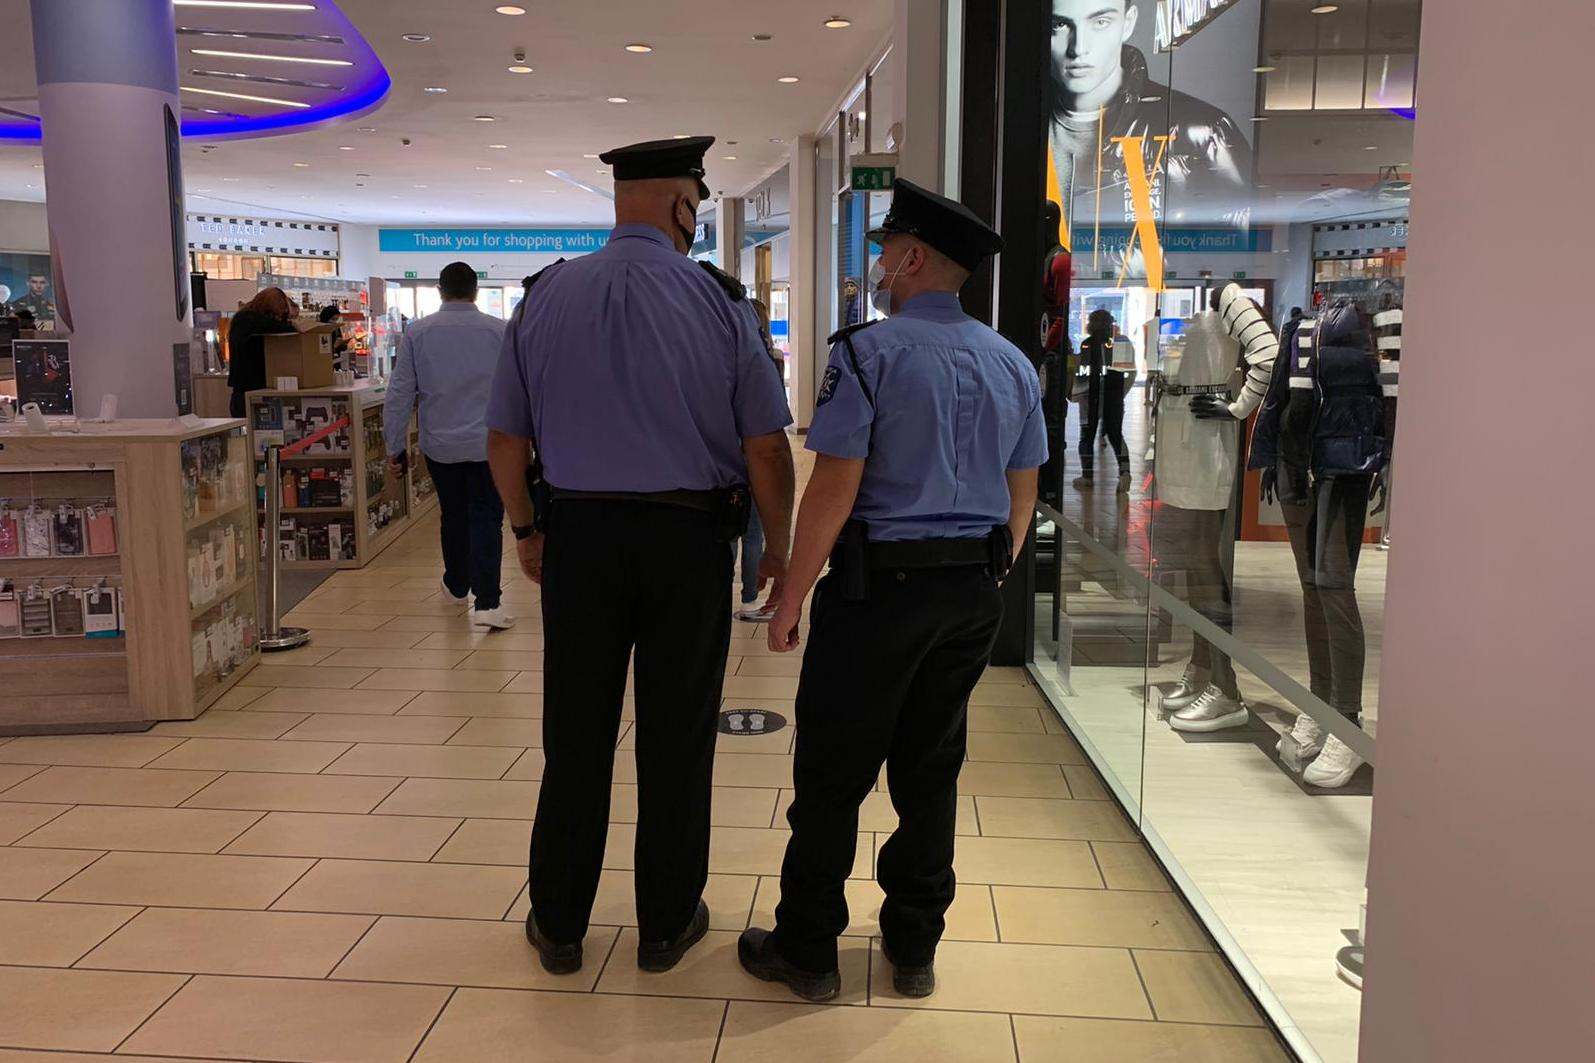 Police officers were seen patrolling Tigne Point mall. Photo: Jessica Arena